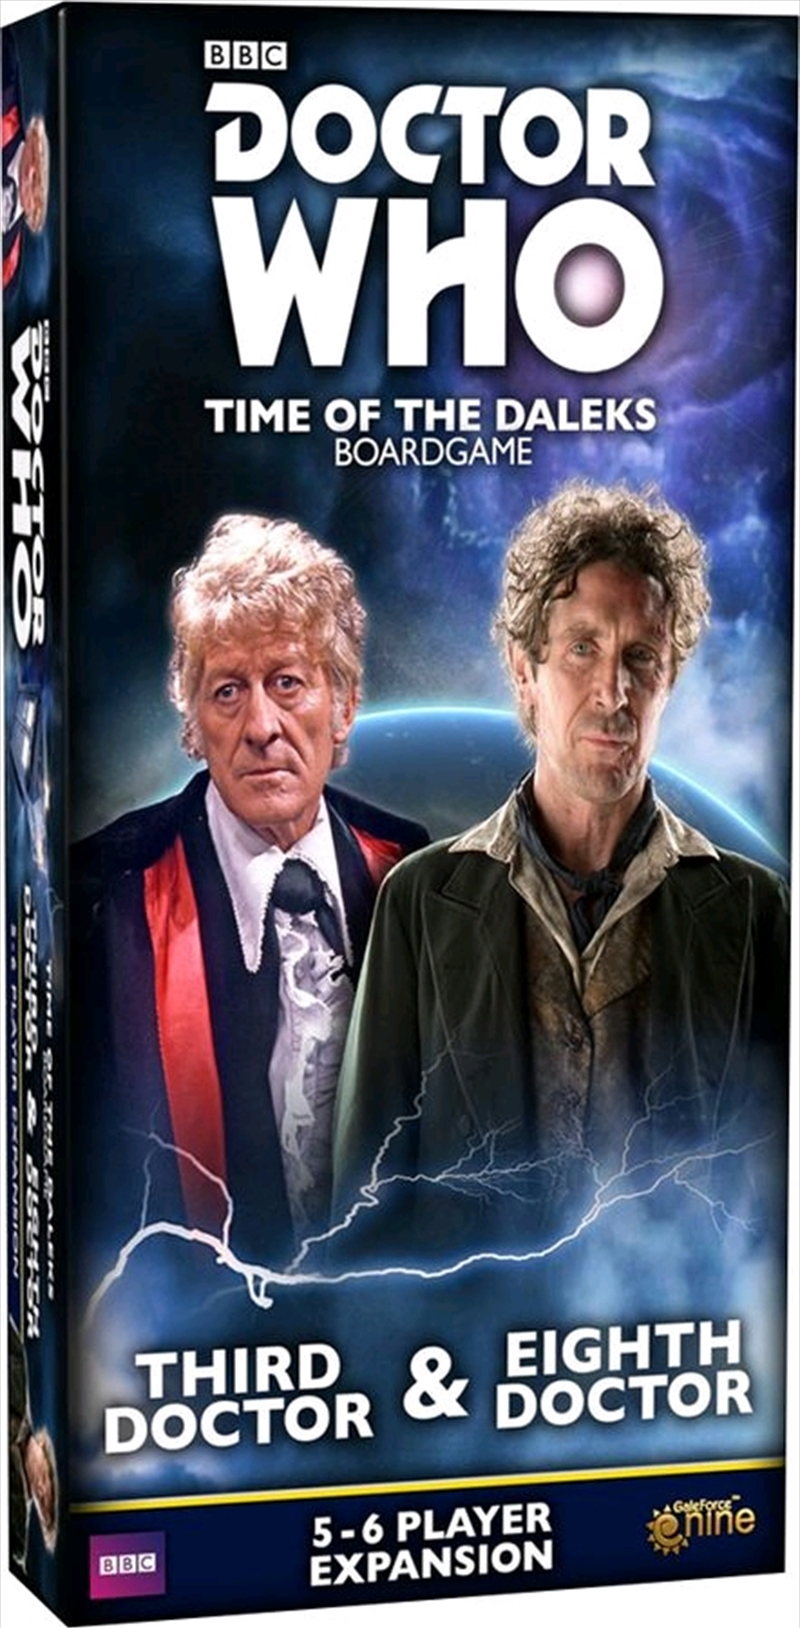 Doctor Who - Time of the Daleks Third & Eighth Doctor Expansion | Merchandise